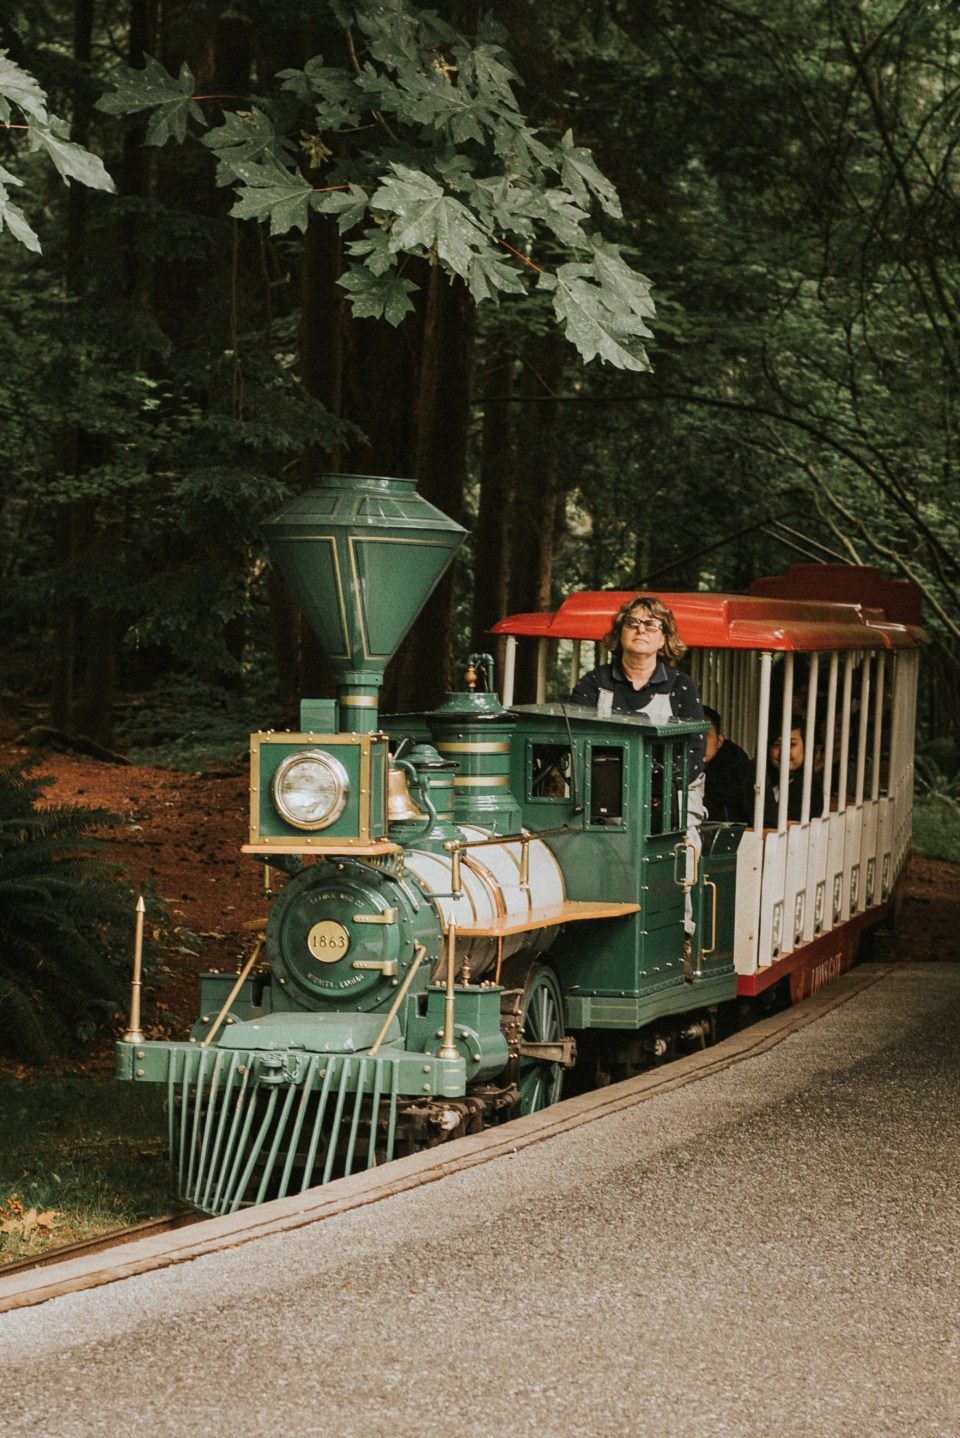 stanley-park-birthday-train-vancouver-bc